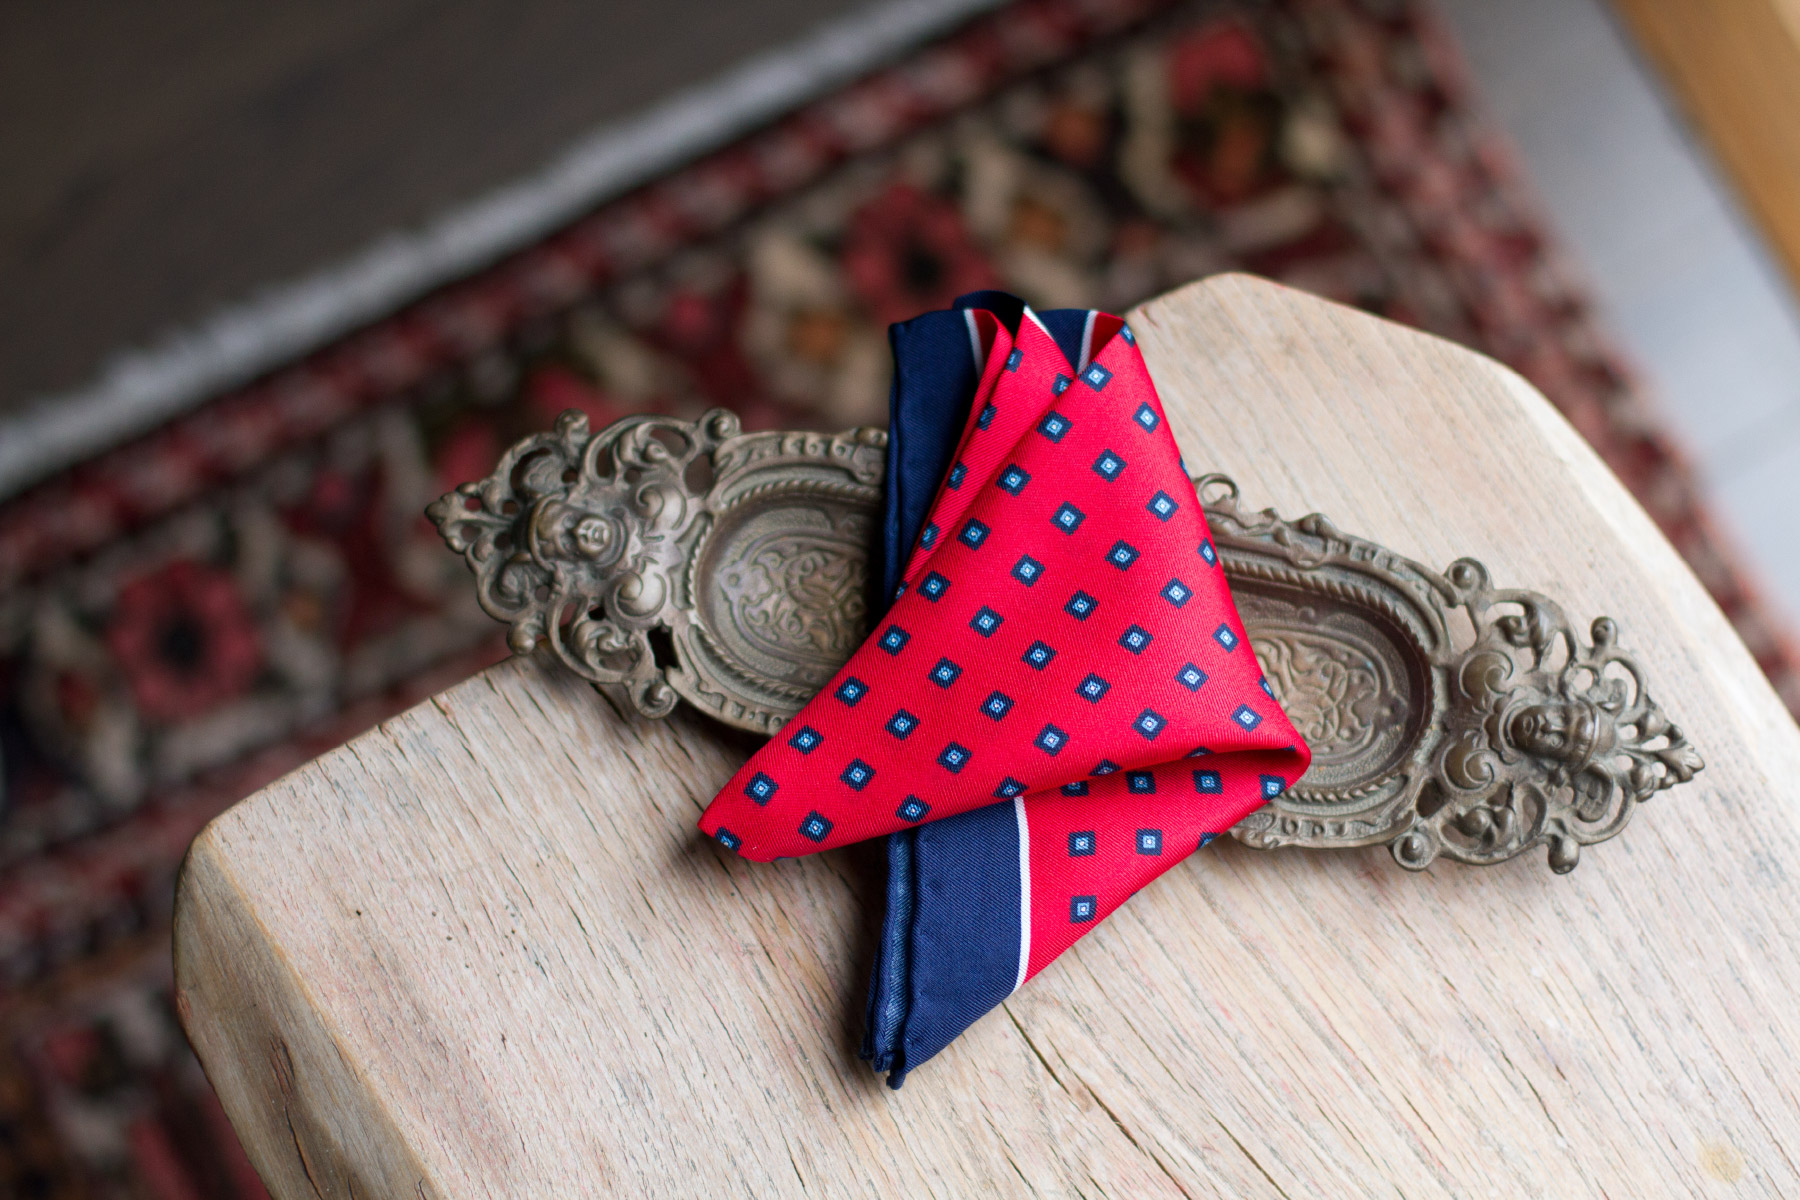 Red handkerchief with blue pattern